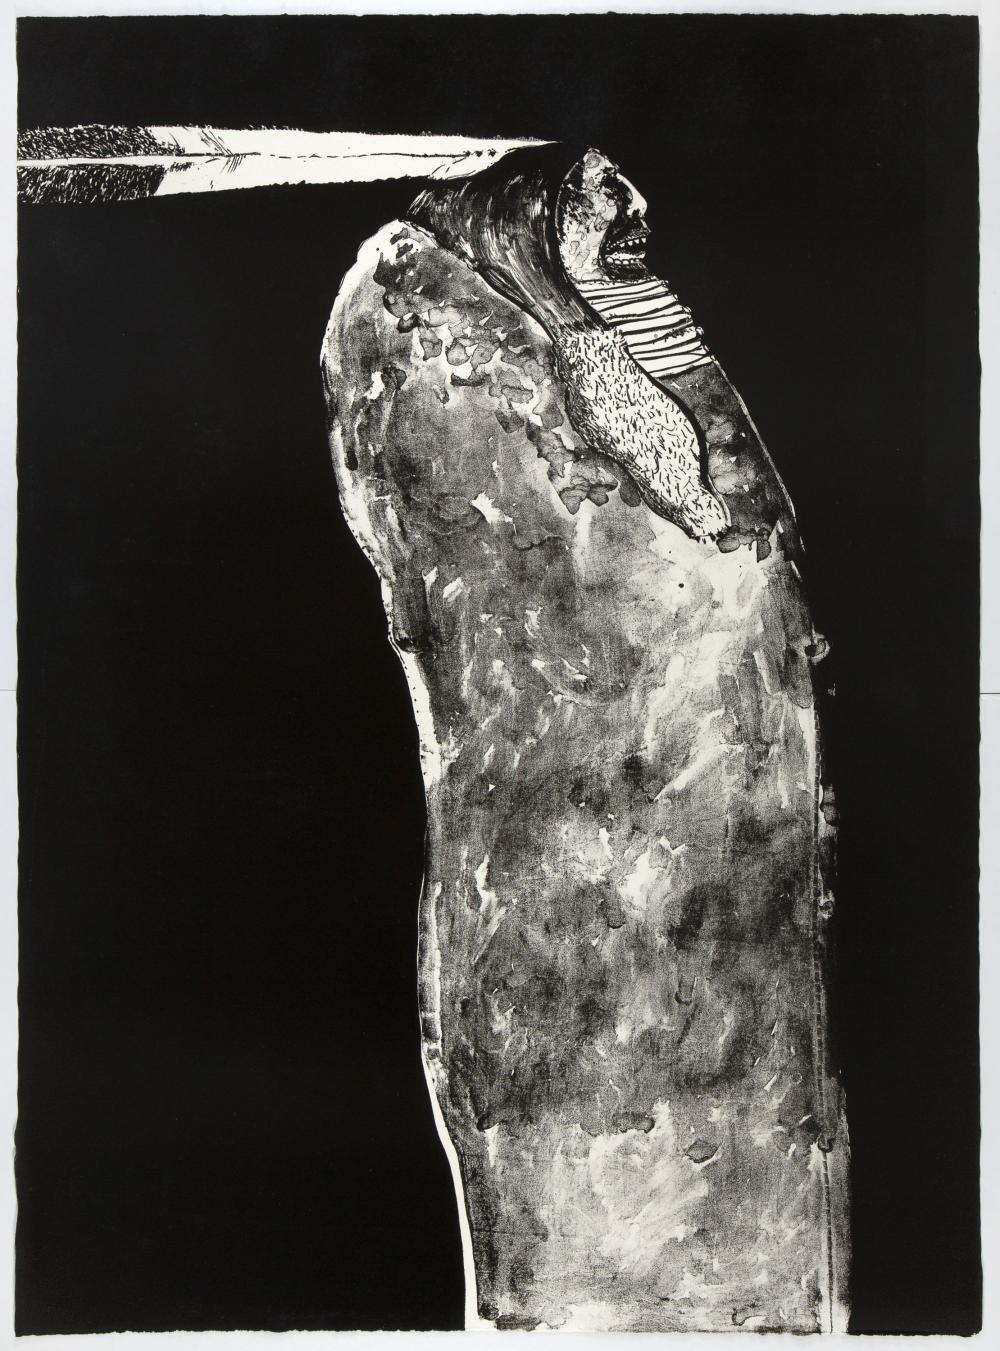 Fritz Scholder, Indian with Feather, 1970